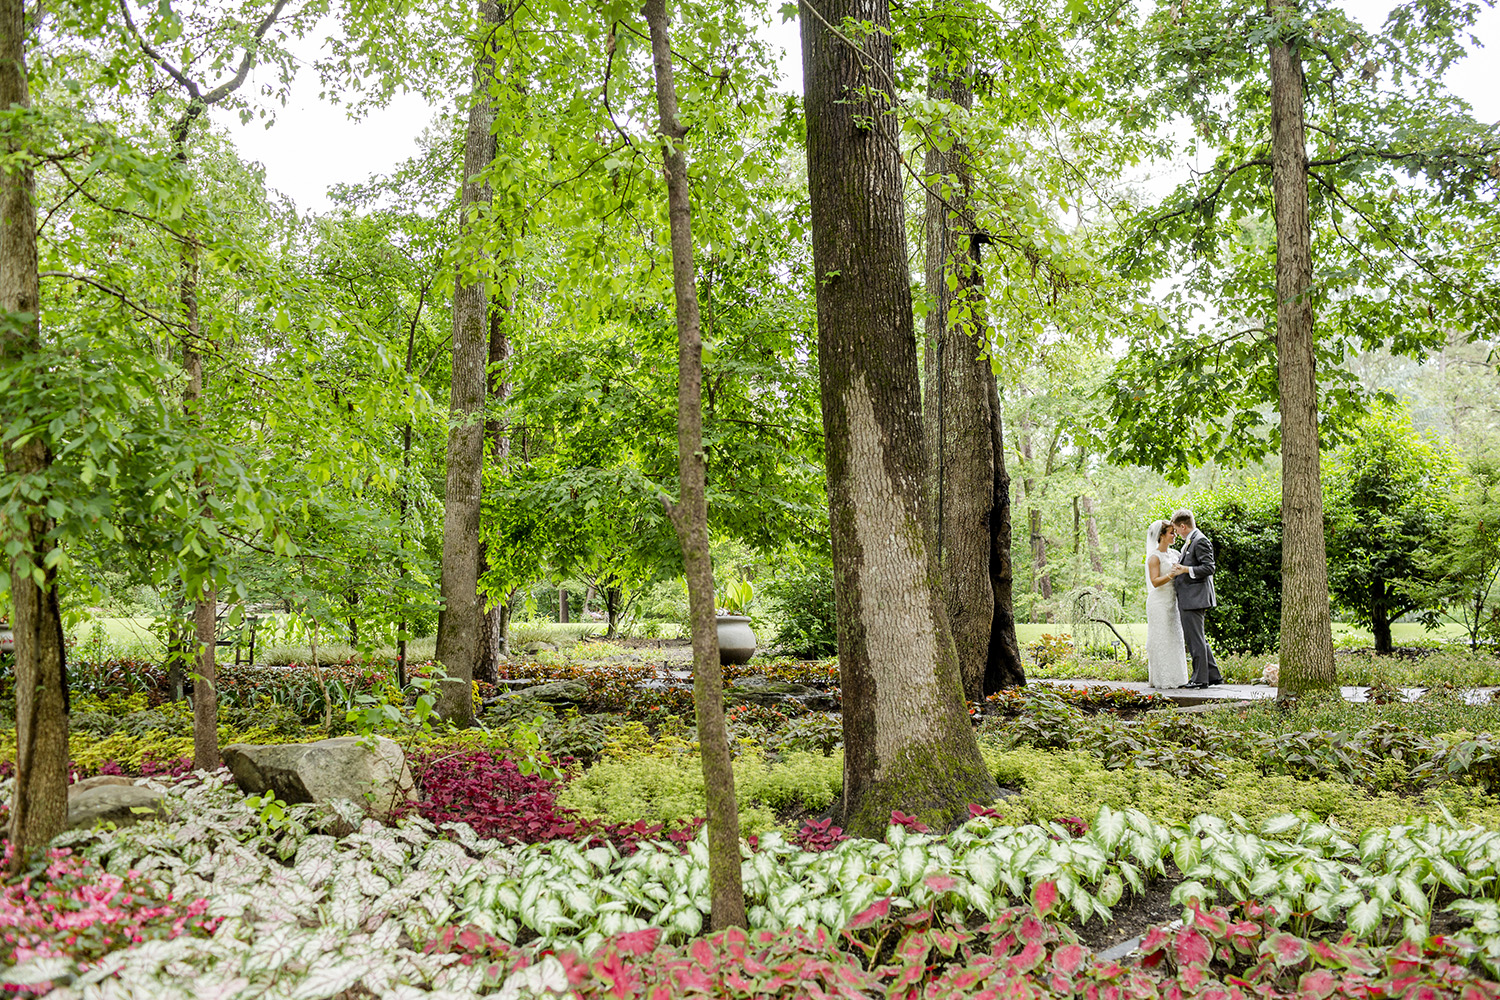 Garvan_Gardens_Wedding_Lindsey_Mark_51.JPG